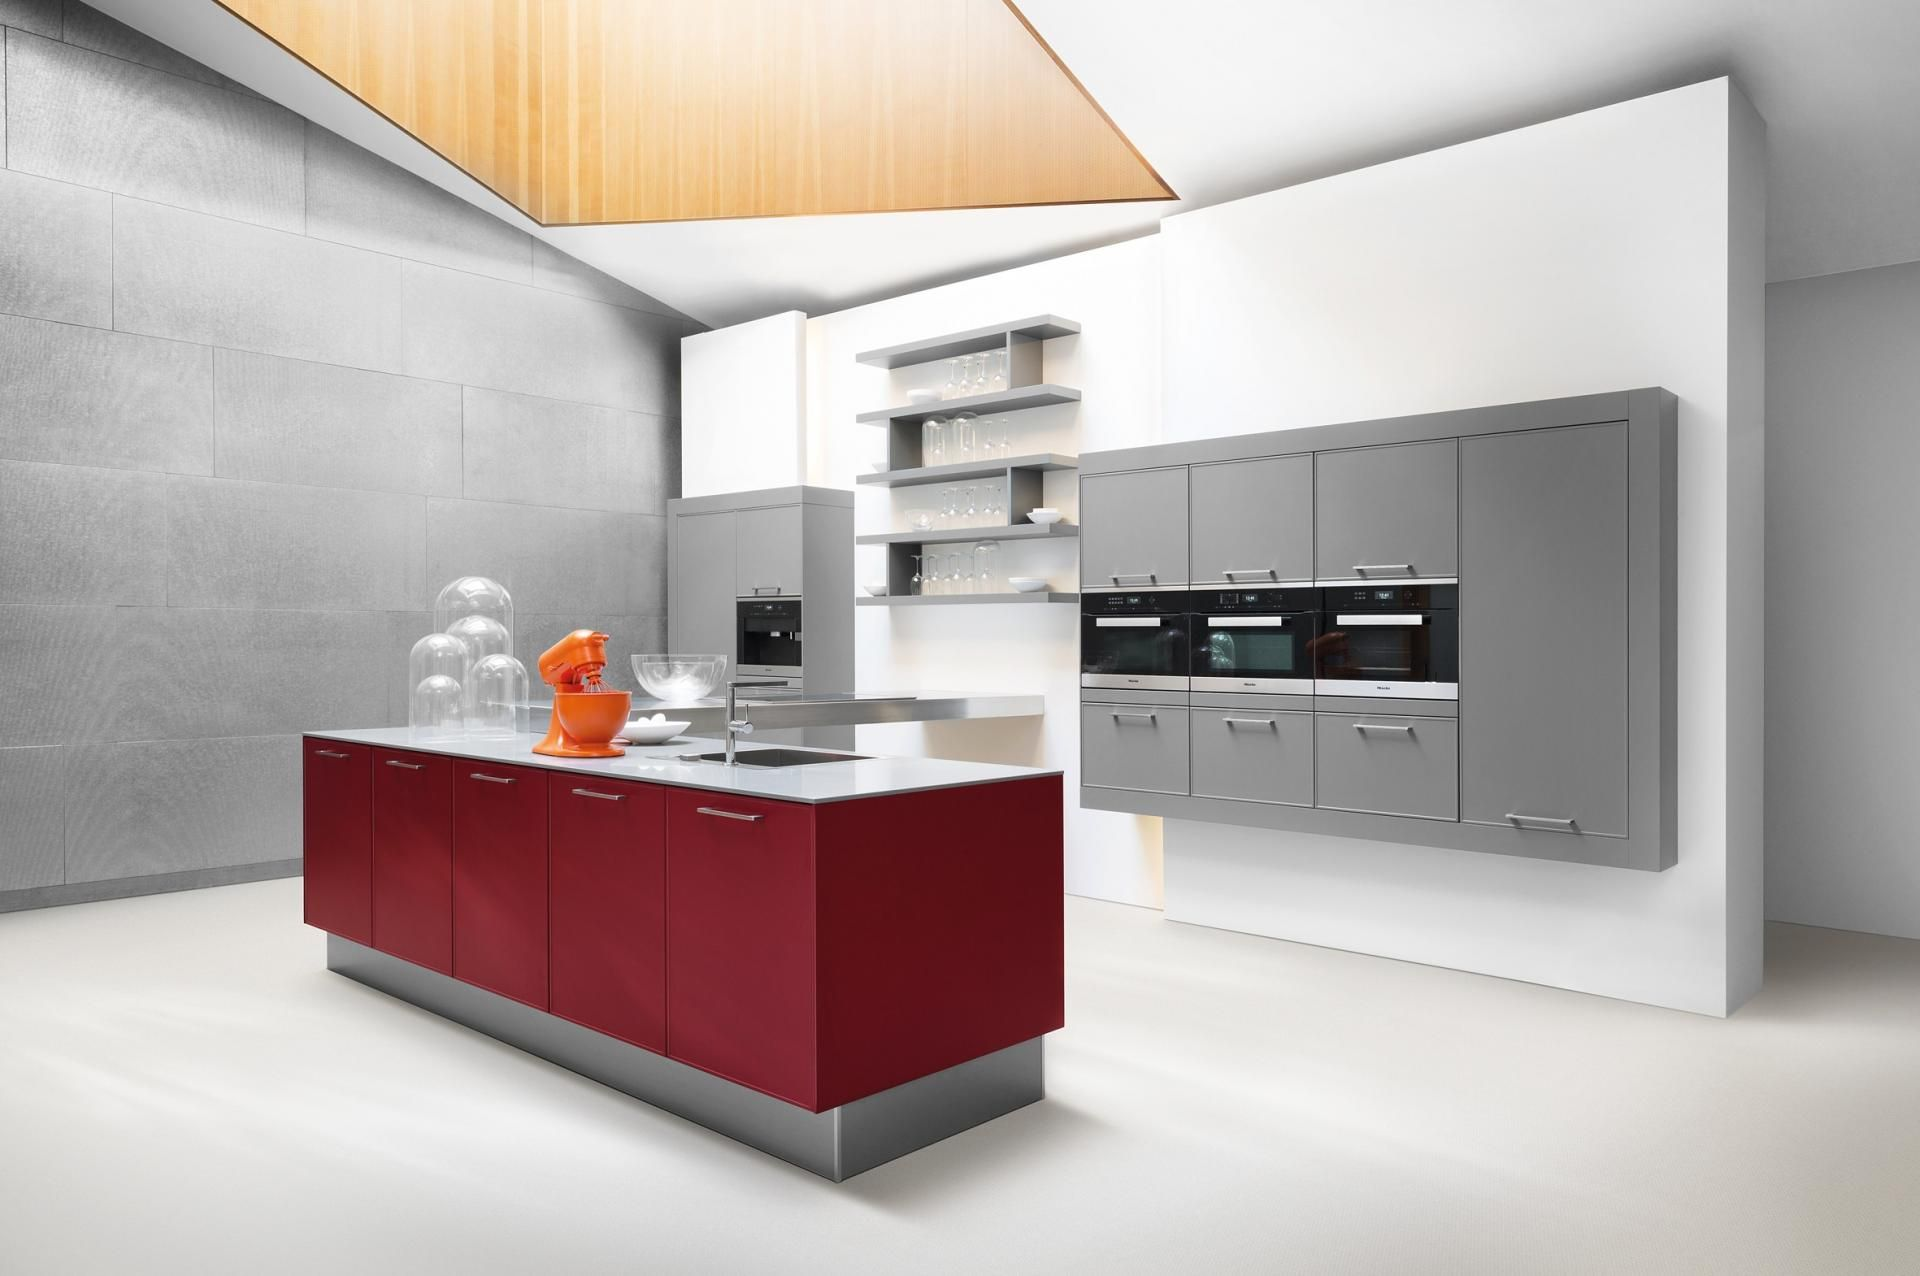 Häcker Küchen Gmbh & Co. Kg Contemporary Kitchen Design By Häcker Küchen Gmbh And Co